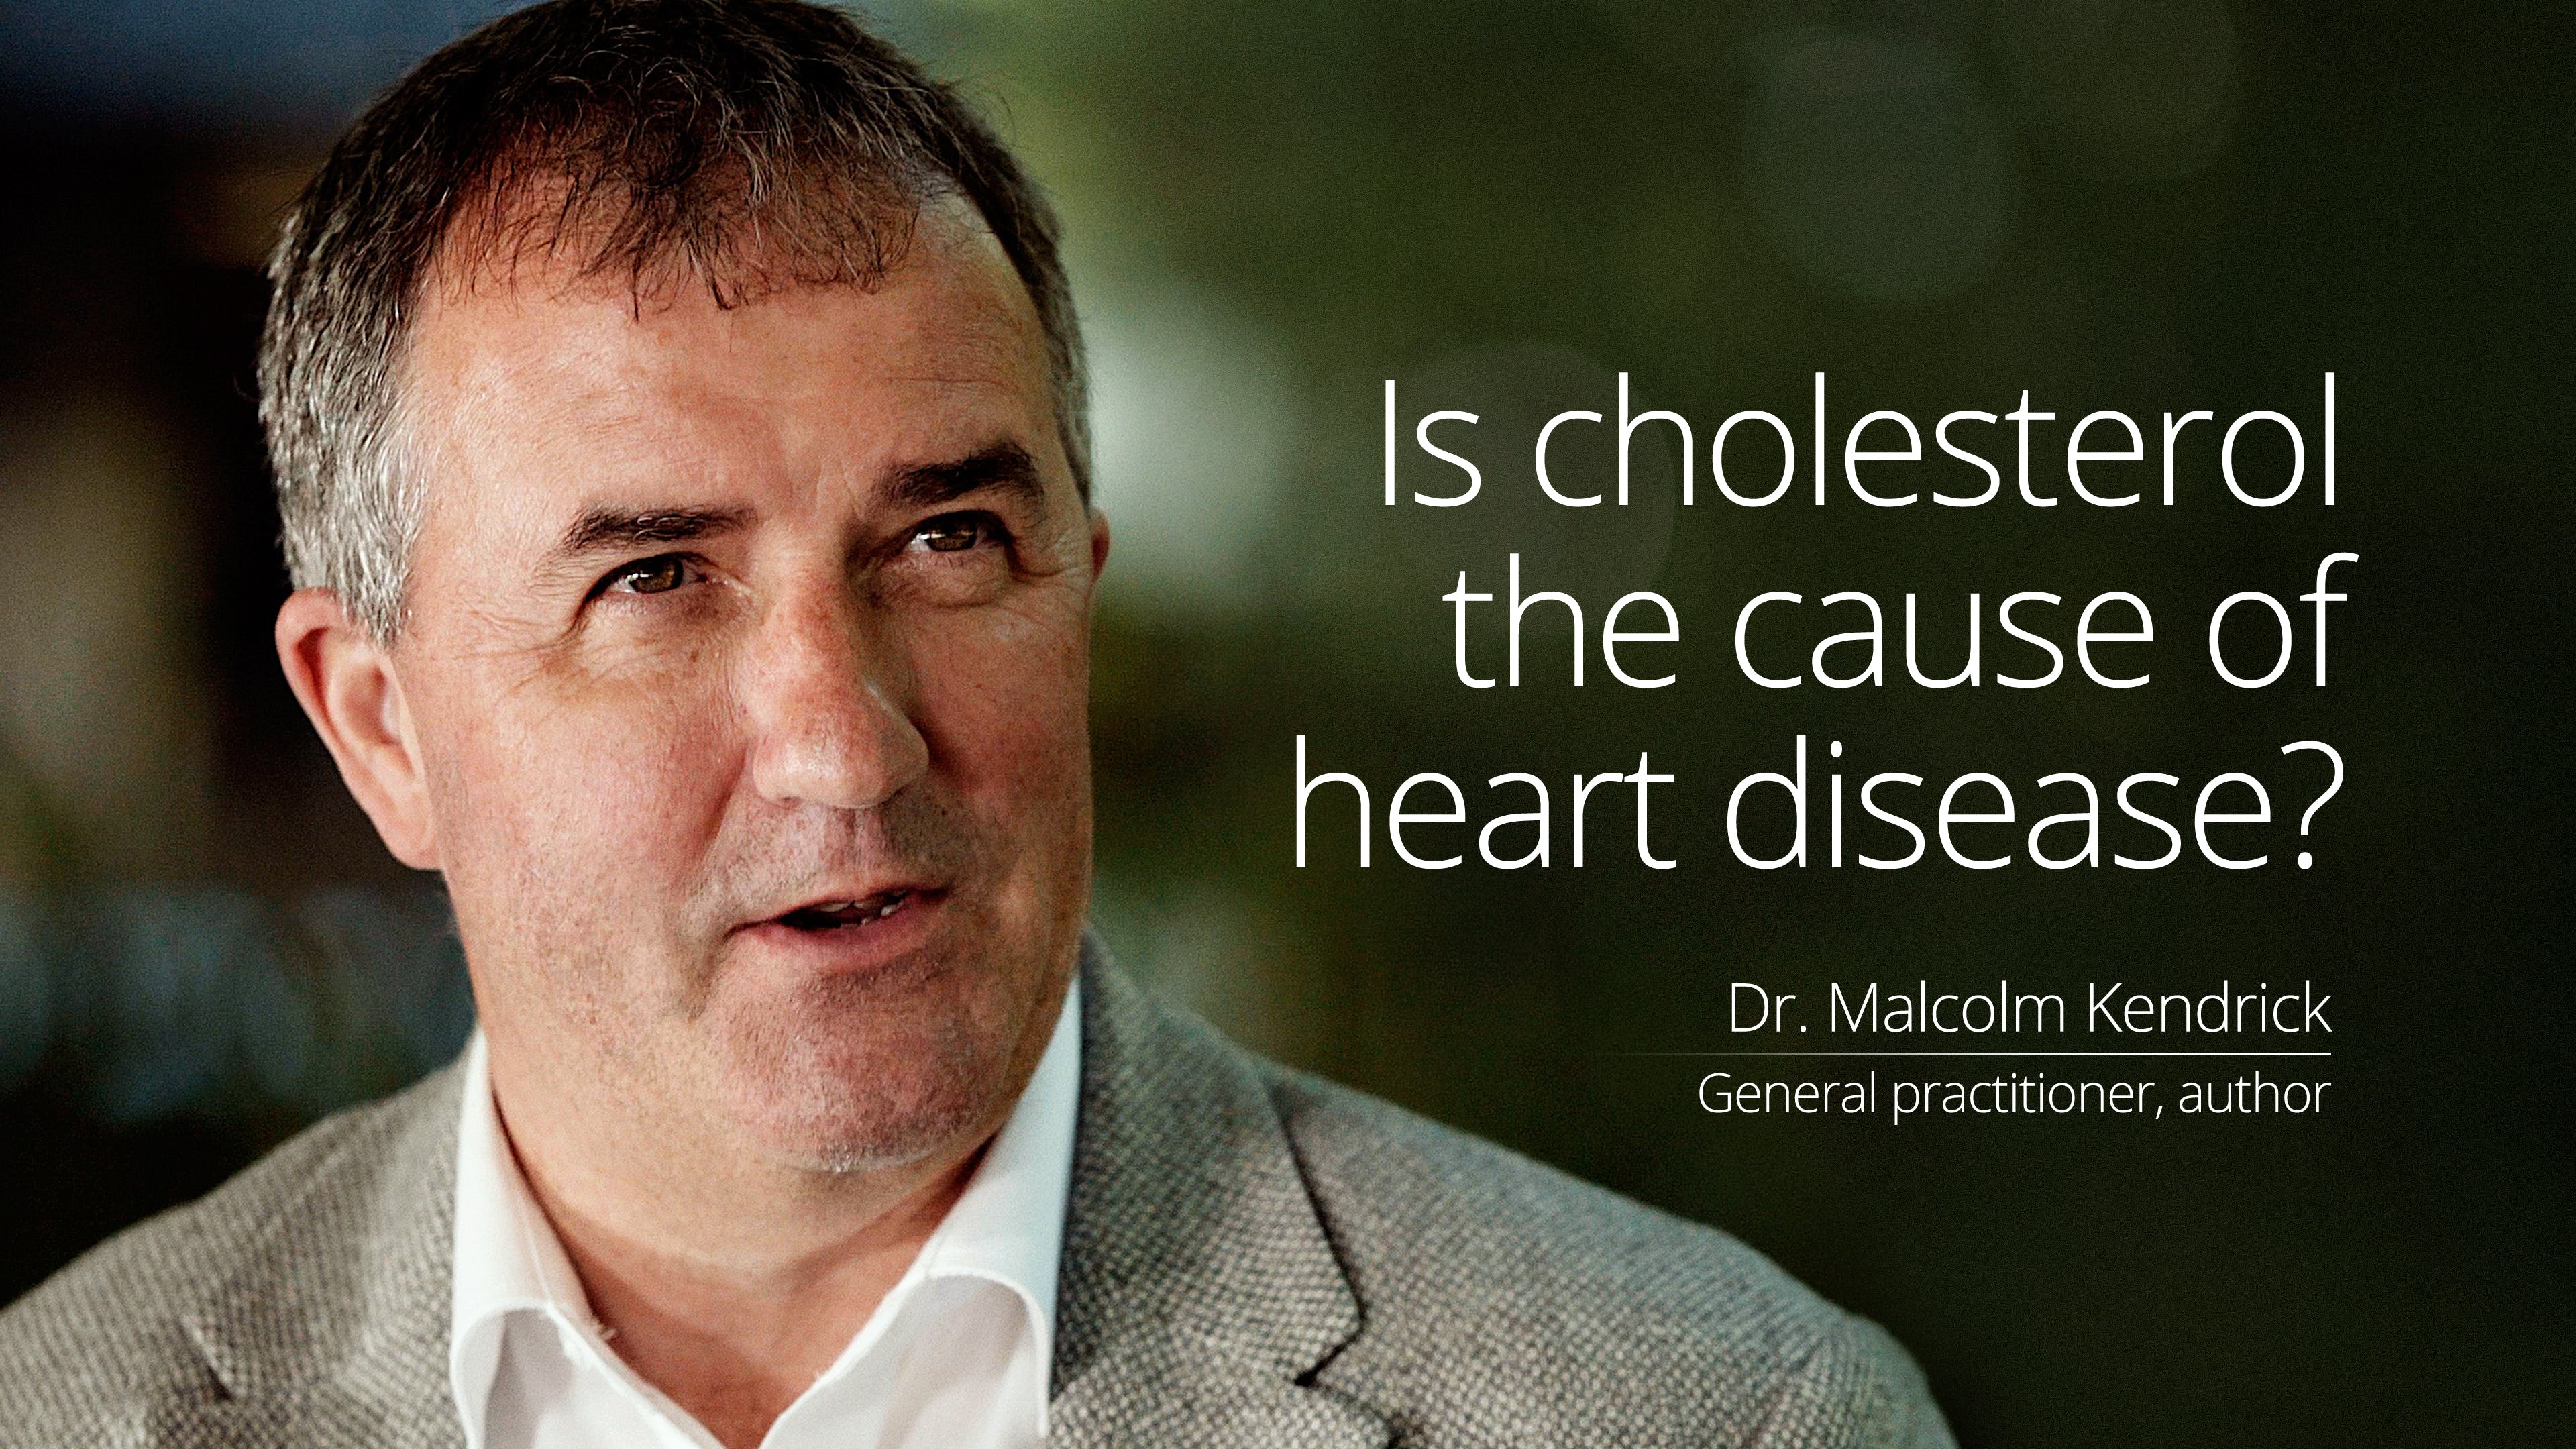 Is cholesterol the cause of heart disease?